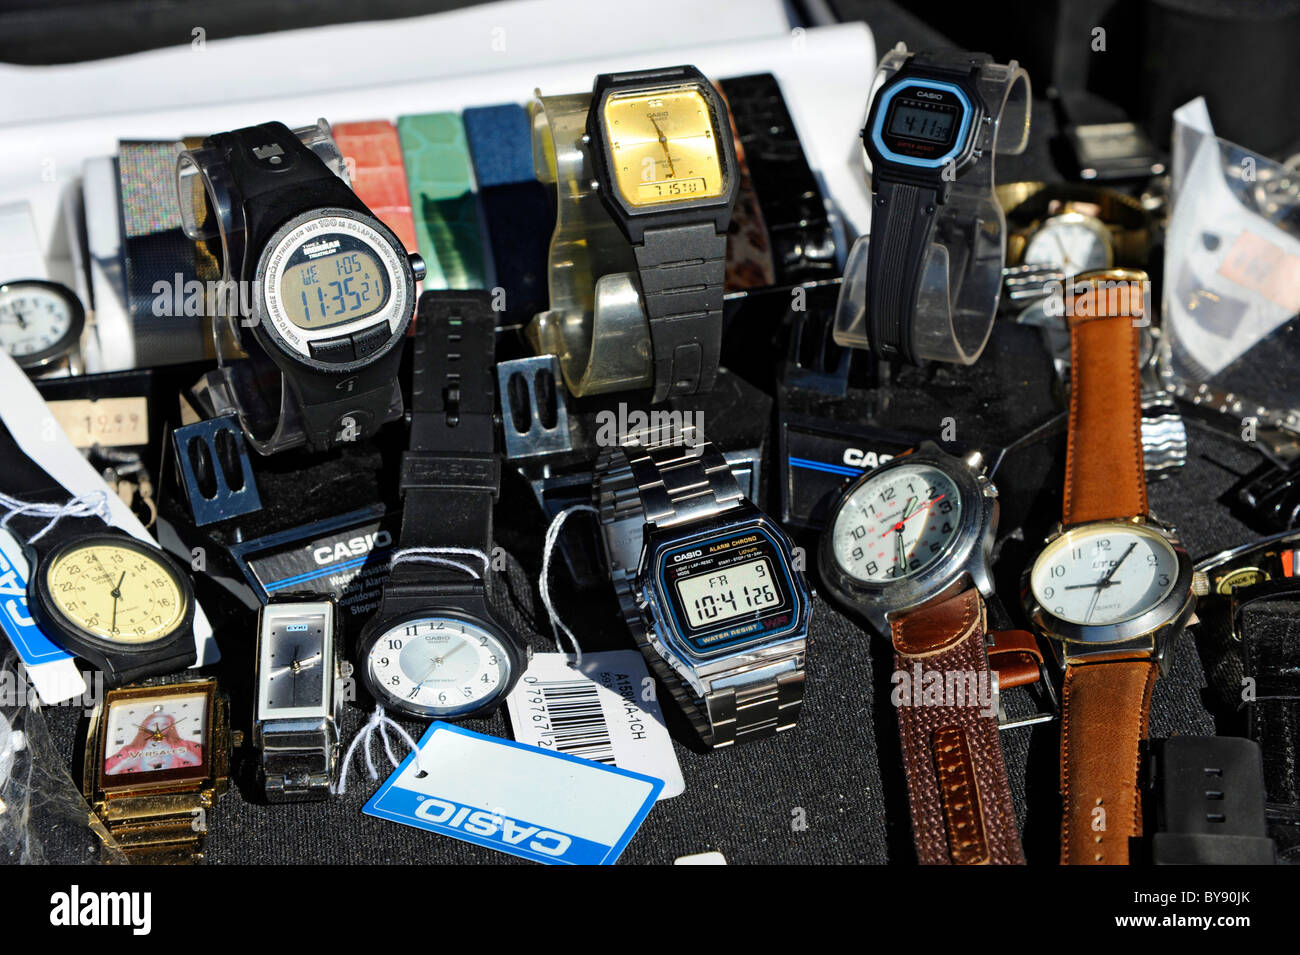 Collection pattern of watches and other time pieces - Stock Image